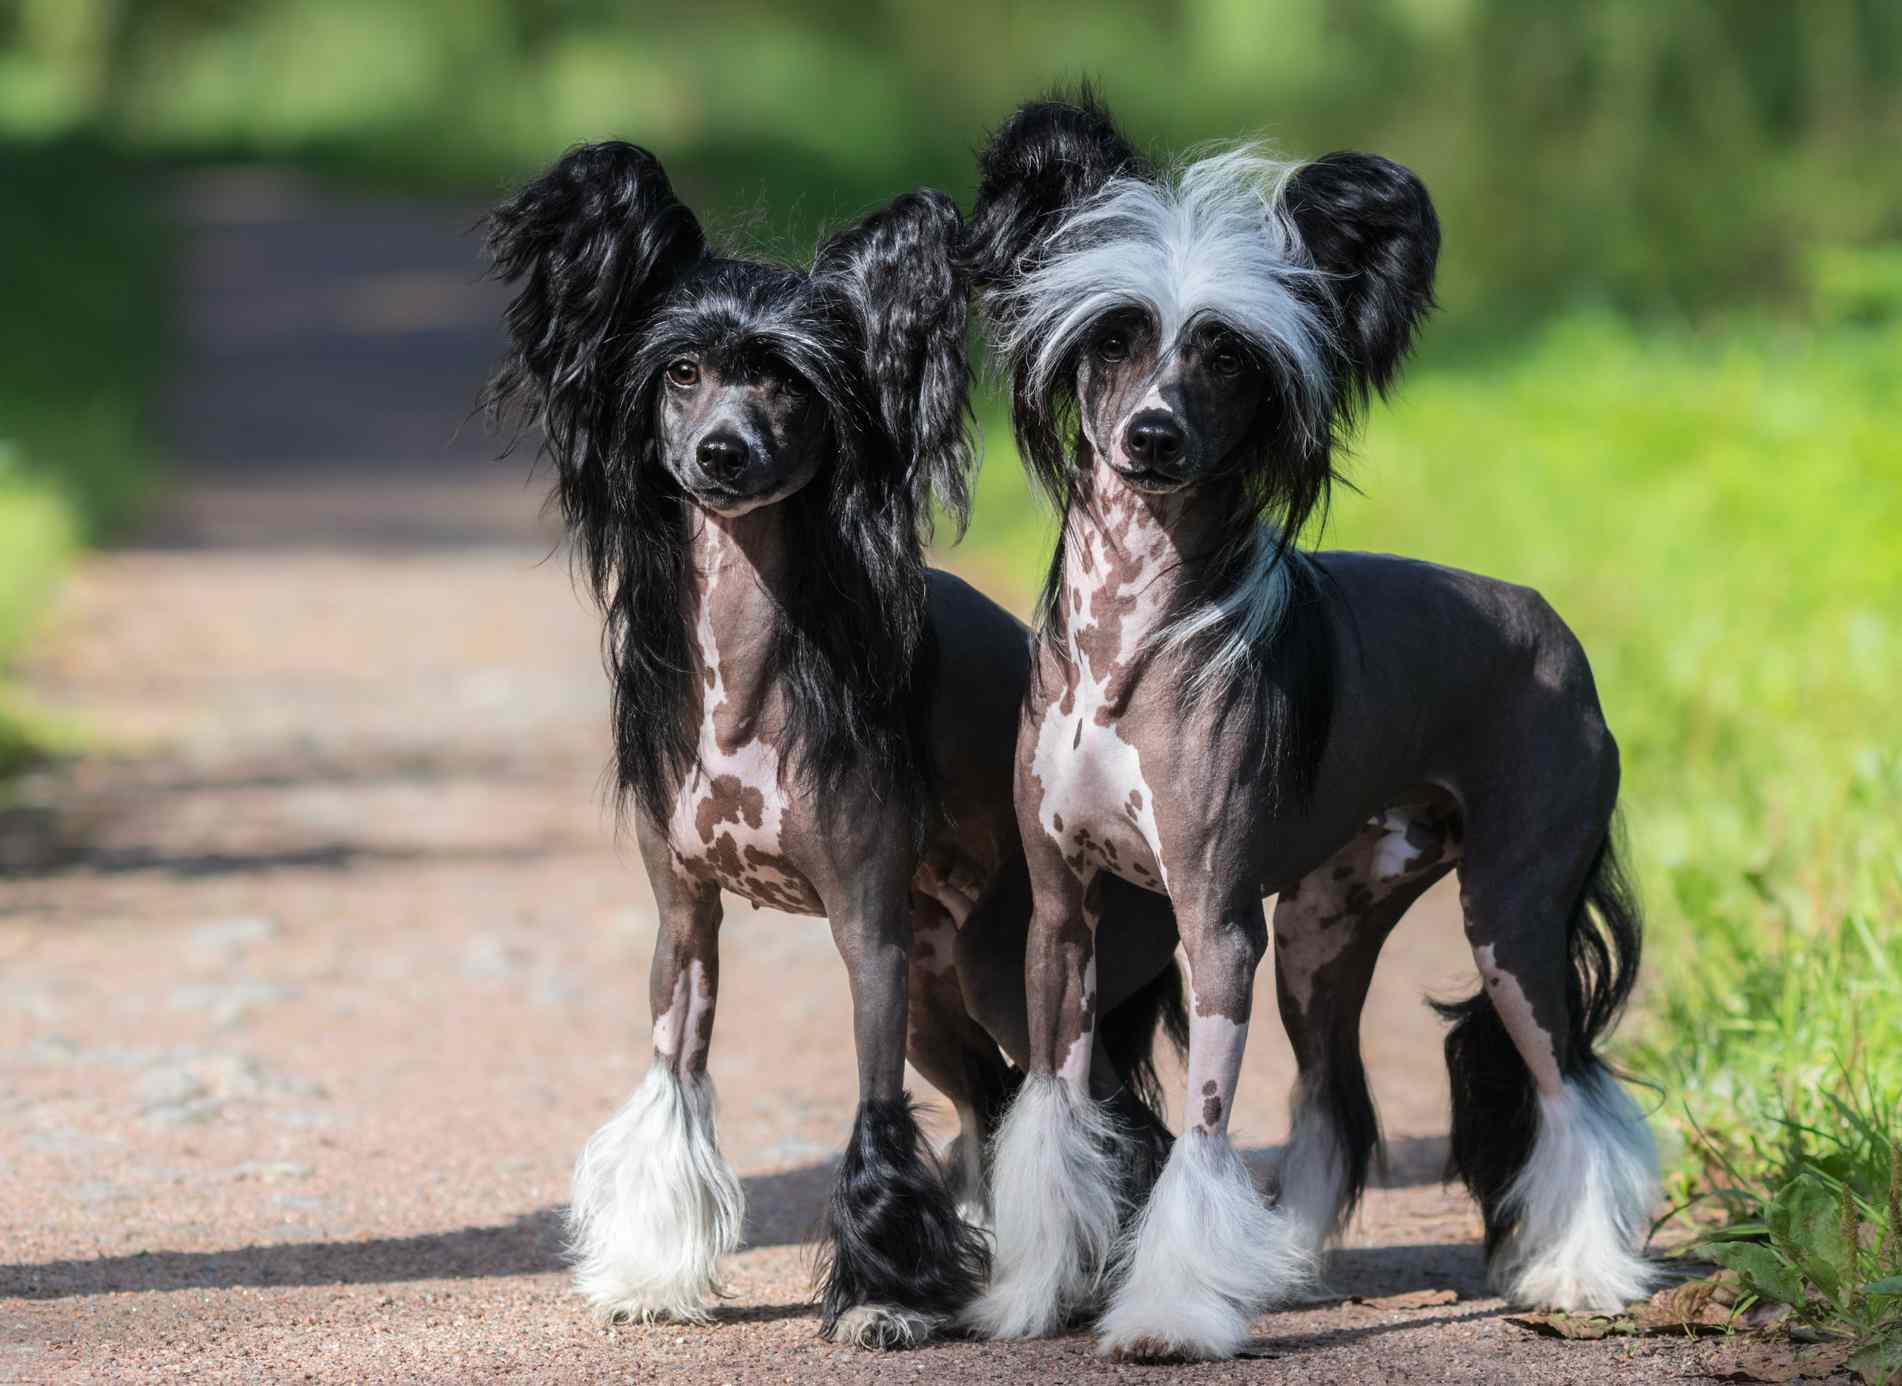 male and female Chinese crested dogs standing on a path surrounded by grass